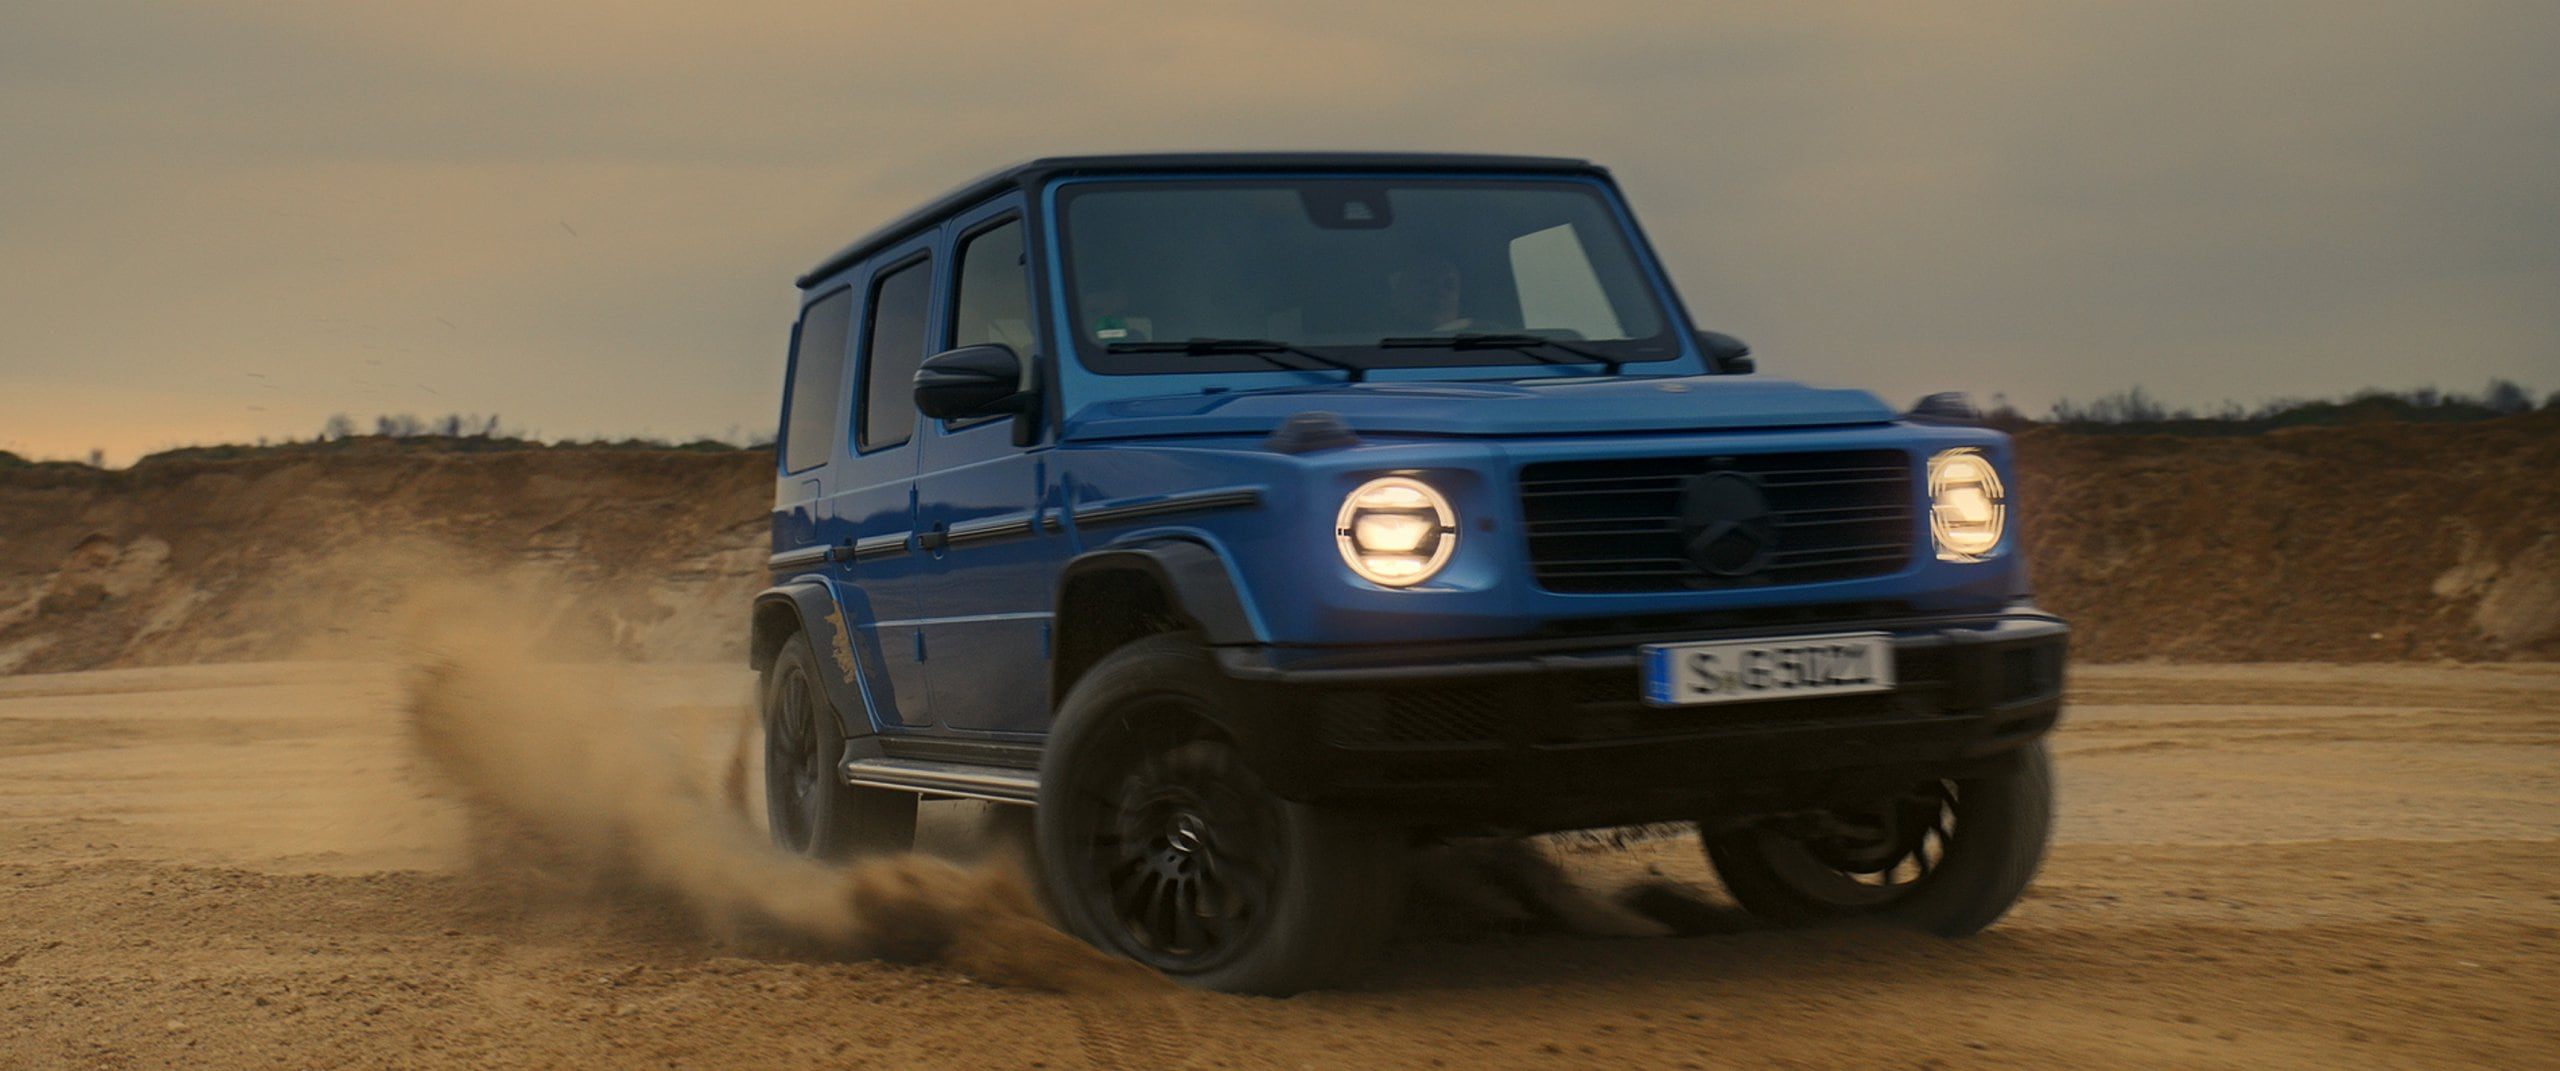 The Mercedes-Benz G-Class drives through a desert.